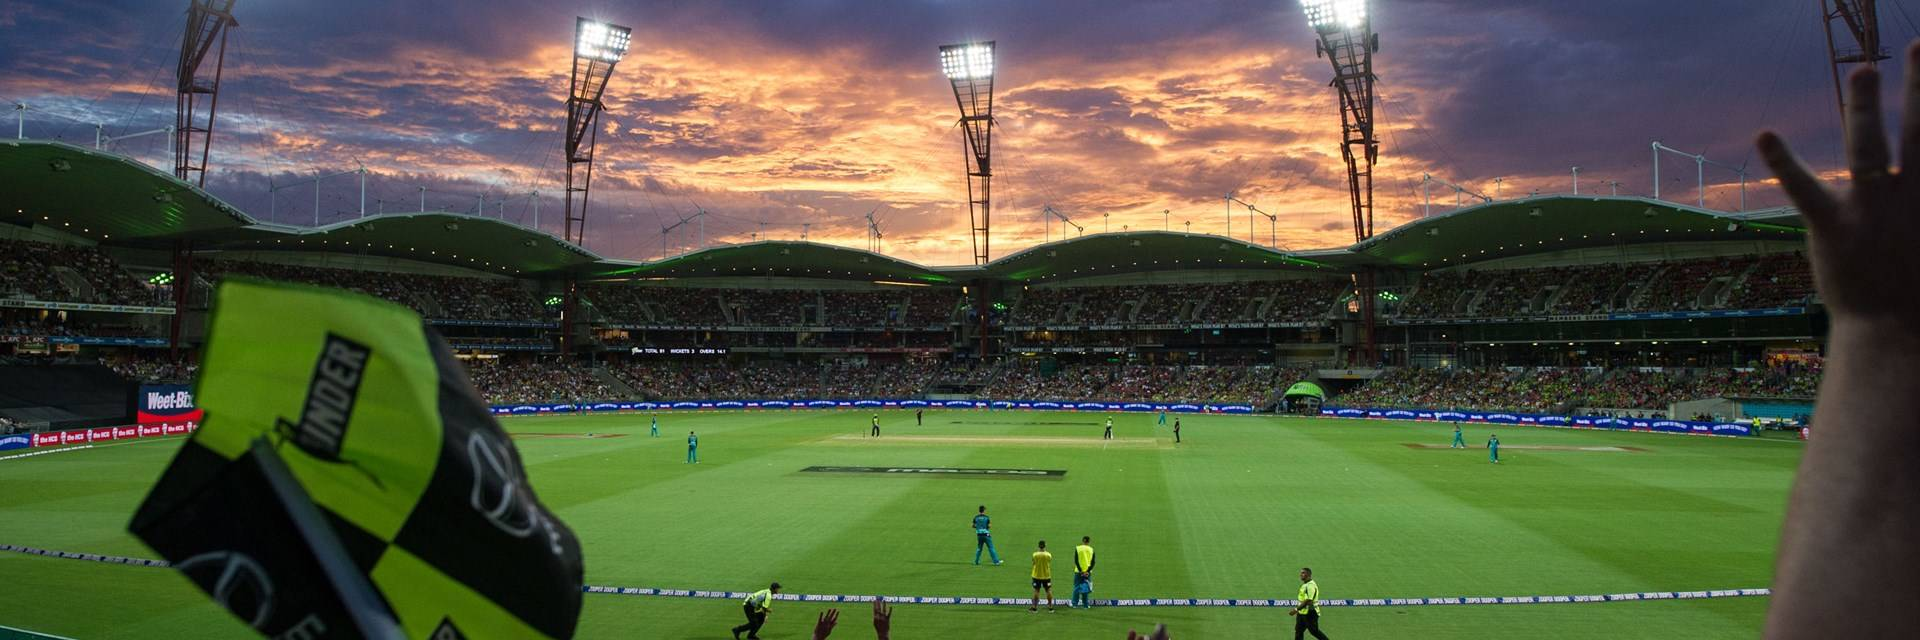 T20 at Sydney Showground Stadium